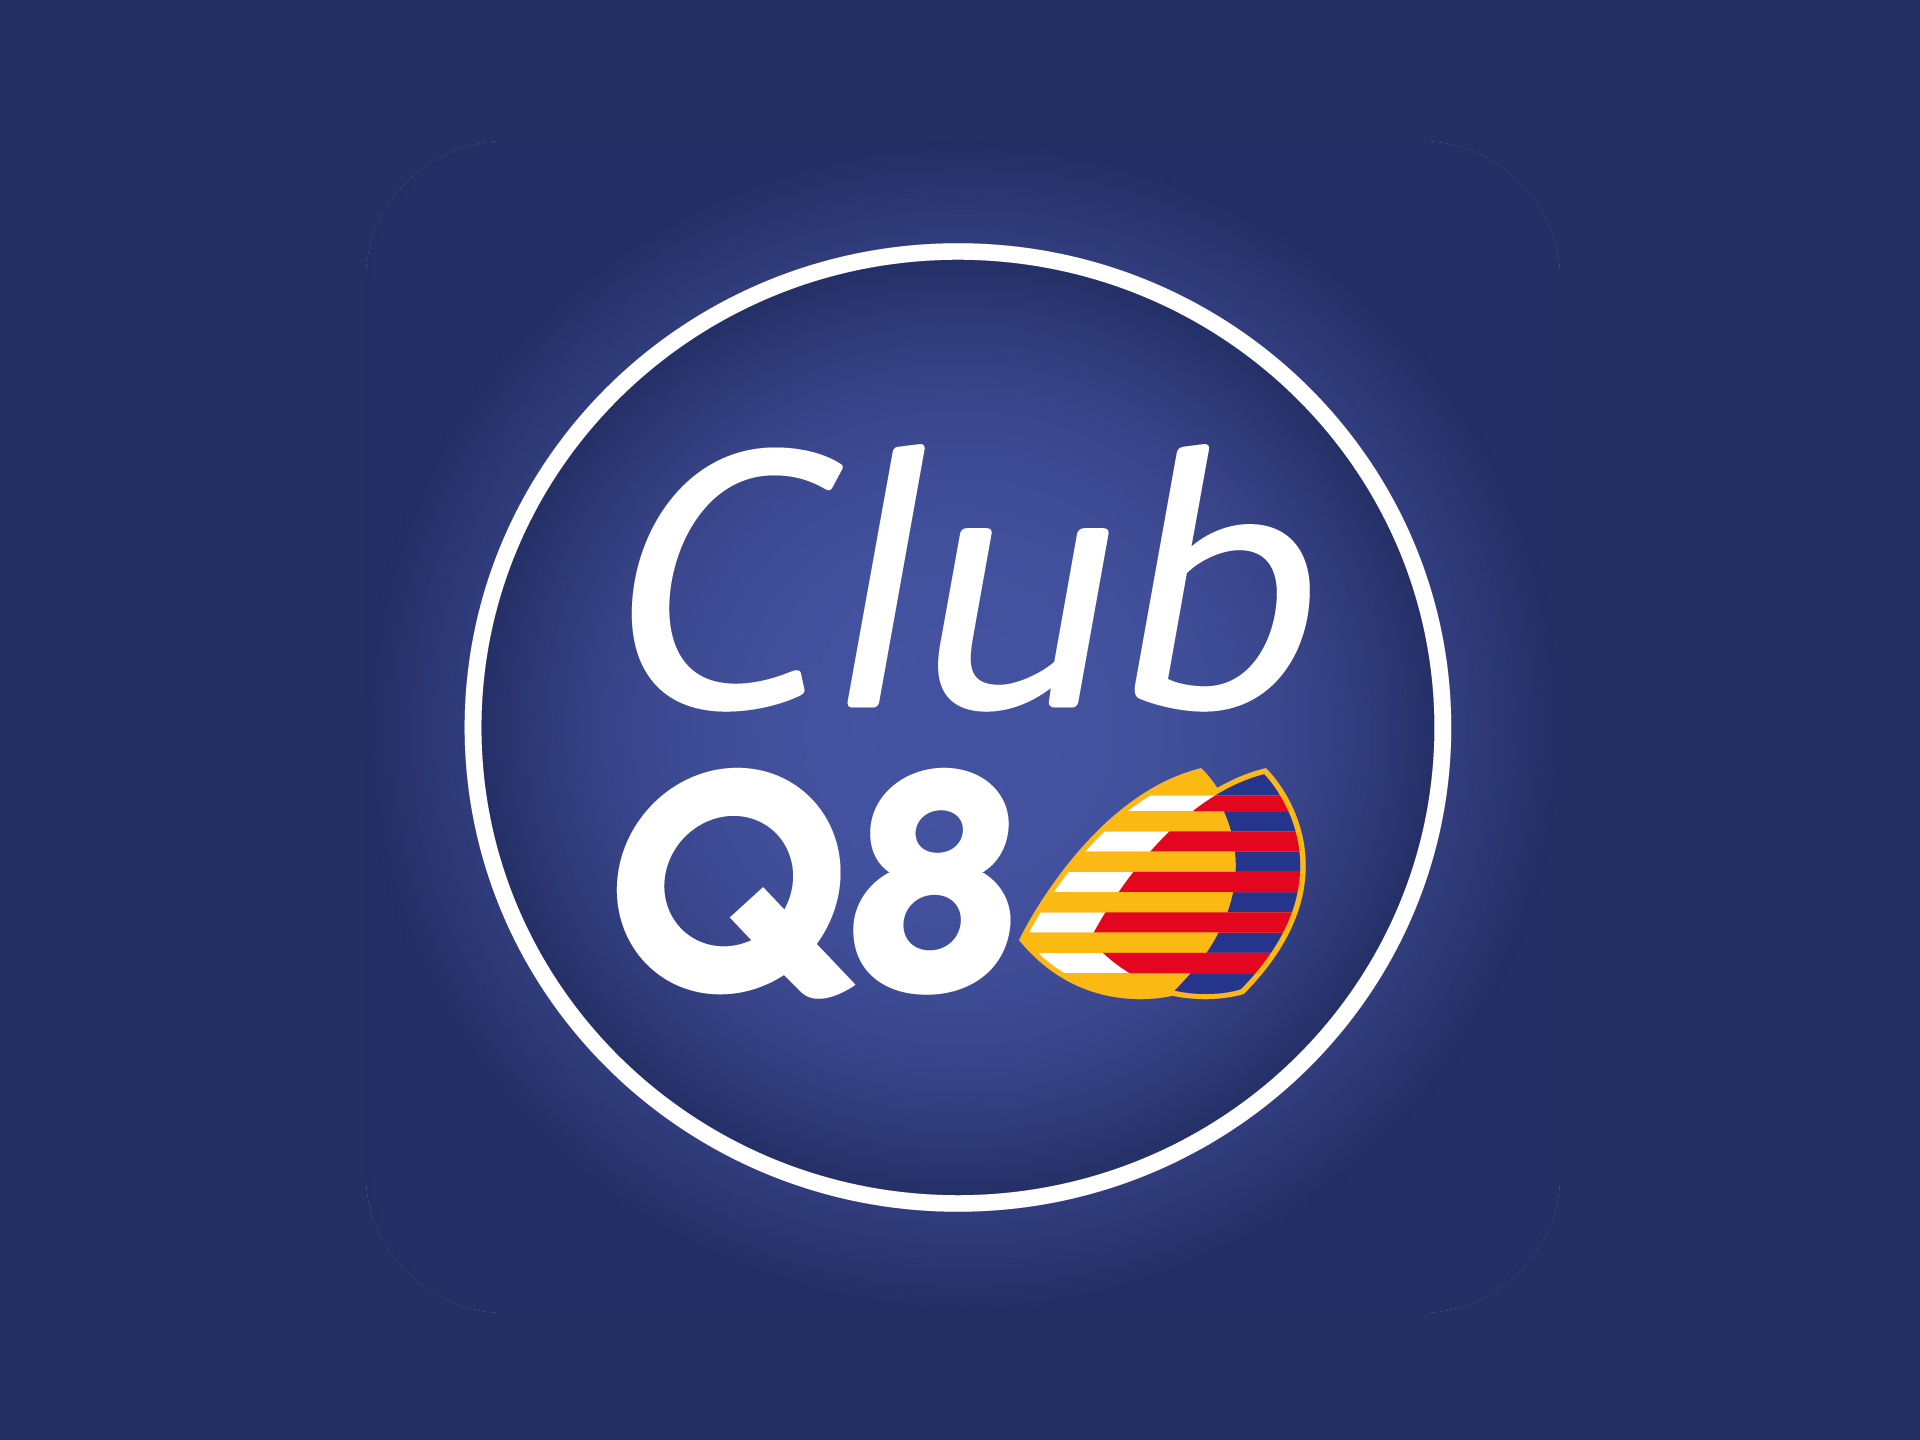 L'app Club Q8 regala 10 euro di rifornimento in buoni carburante